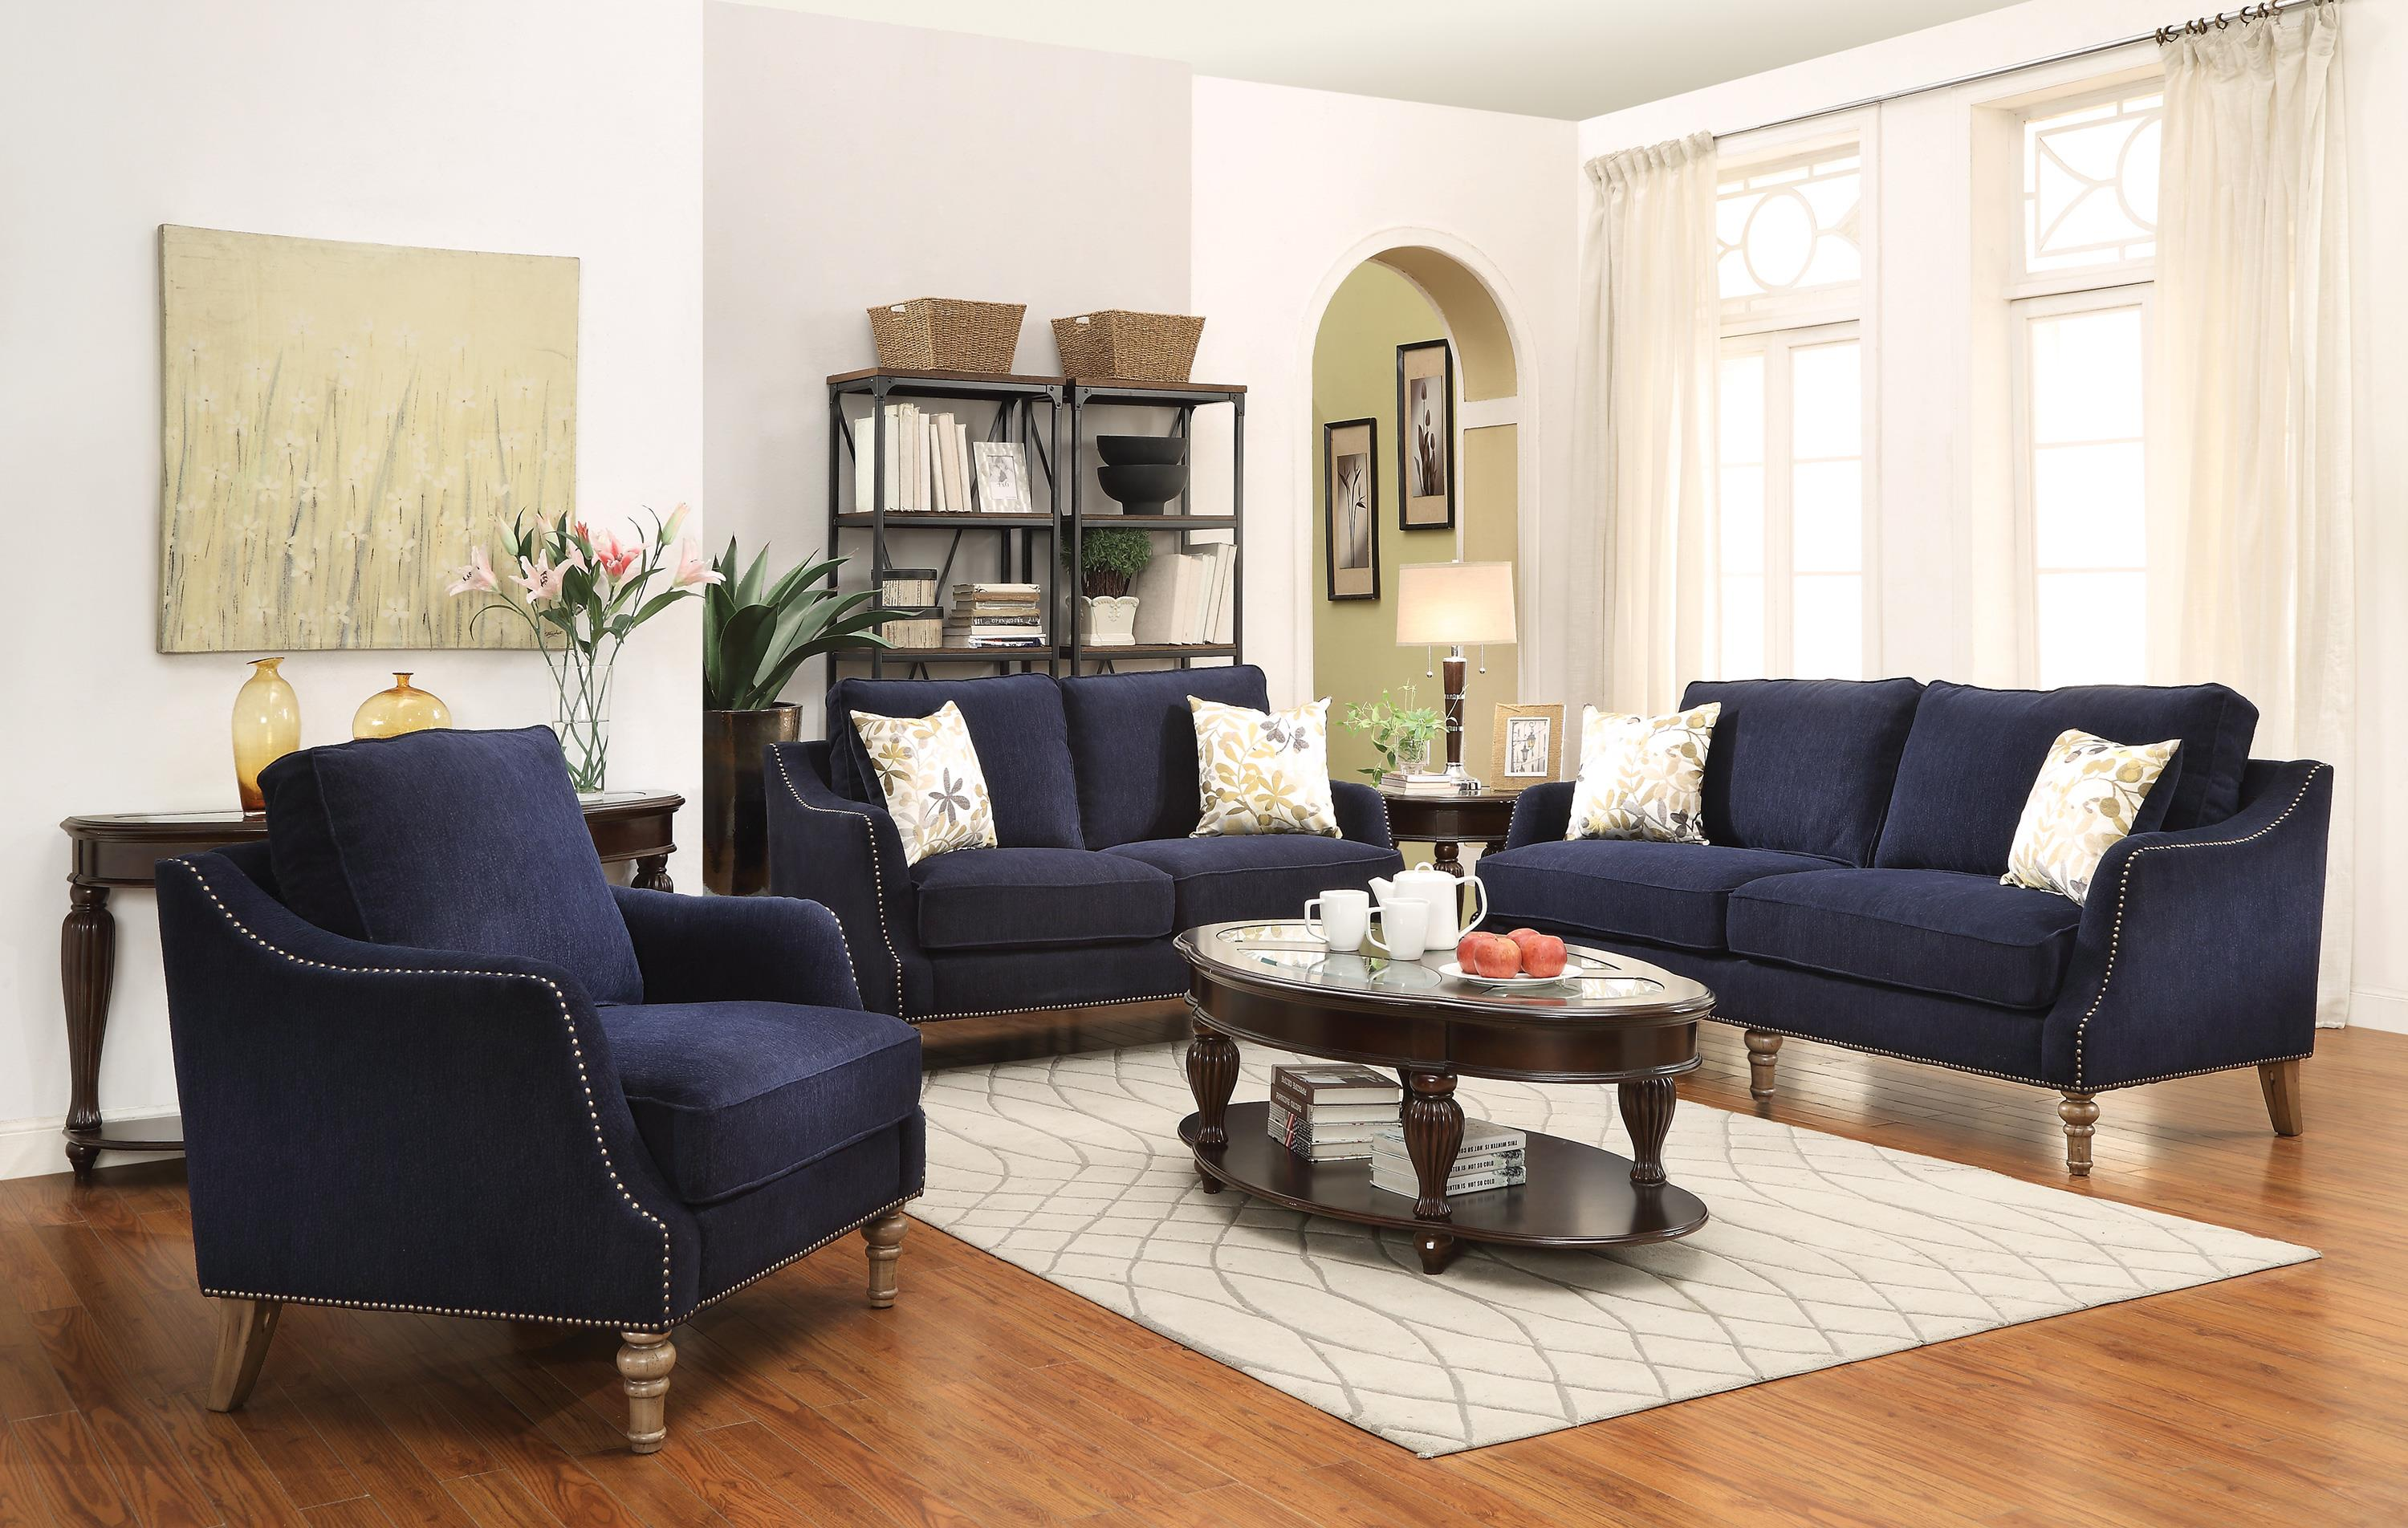 Vessot Transitional Sofa With Nailhead Studs And Feather Cushion